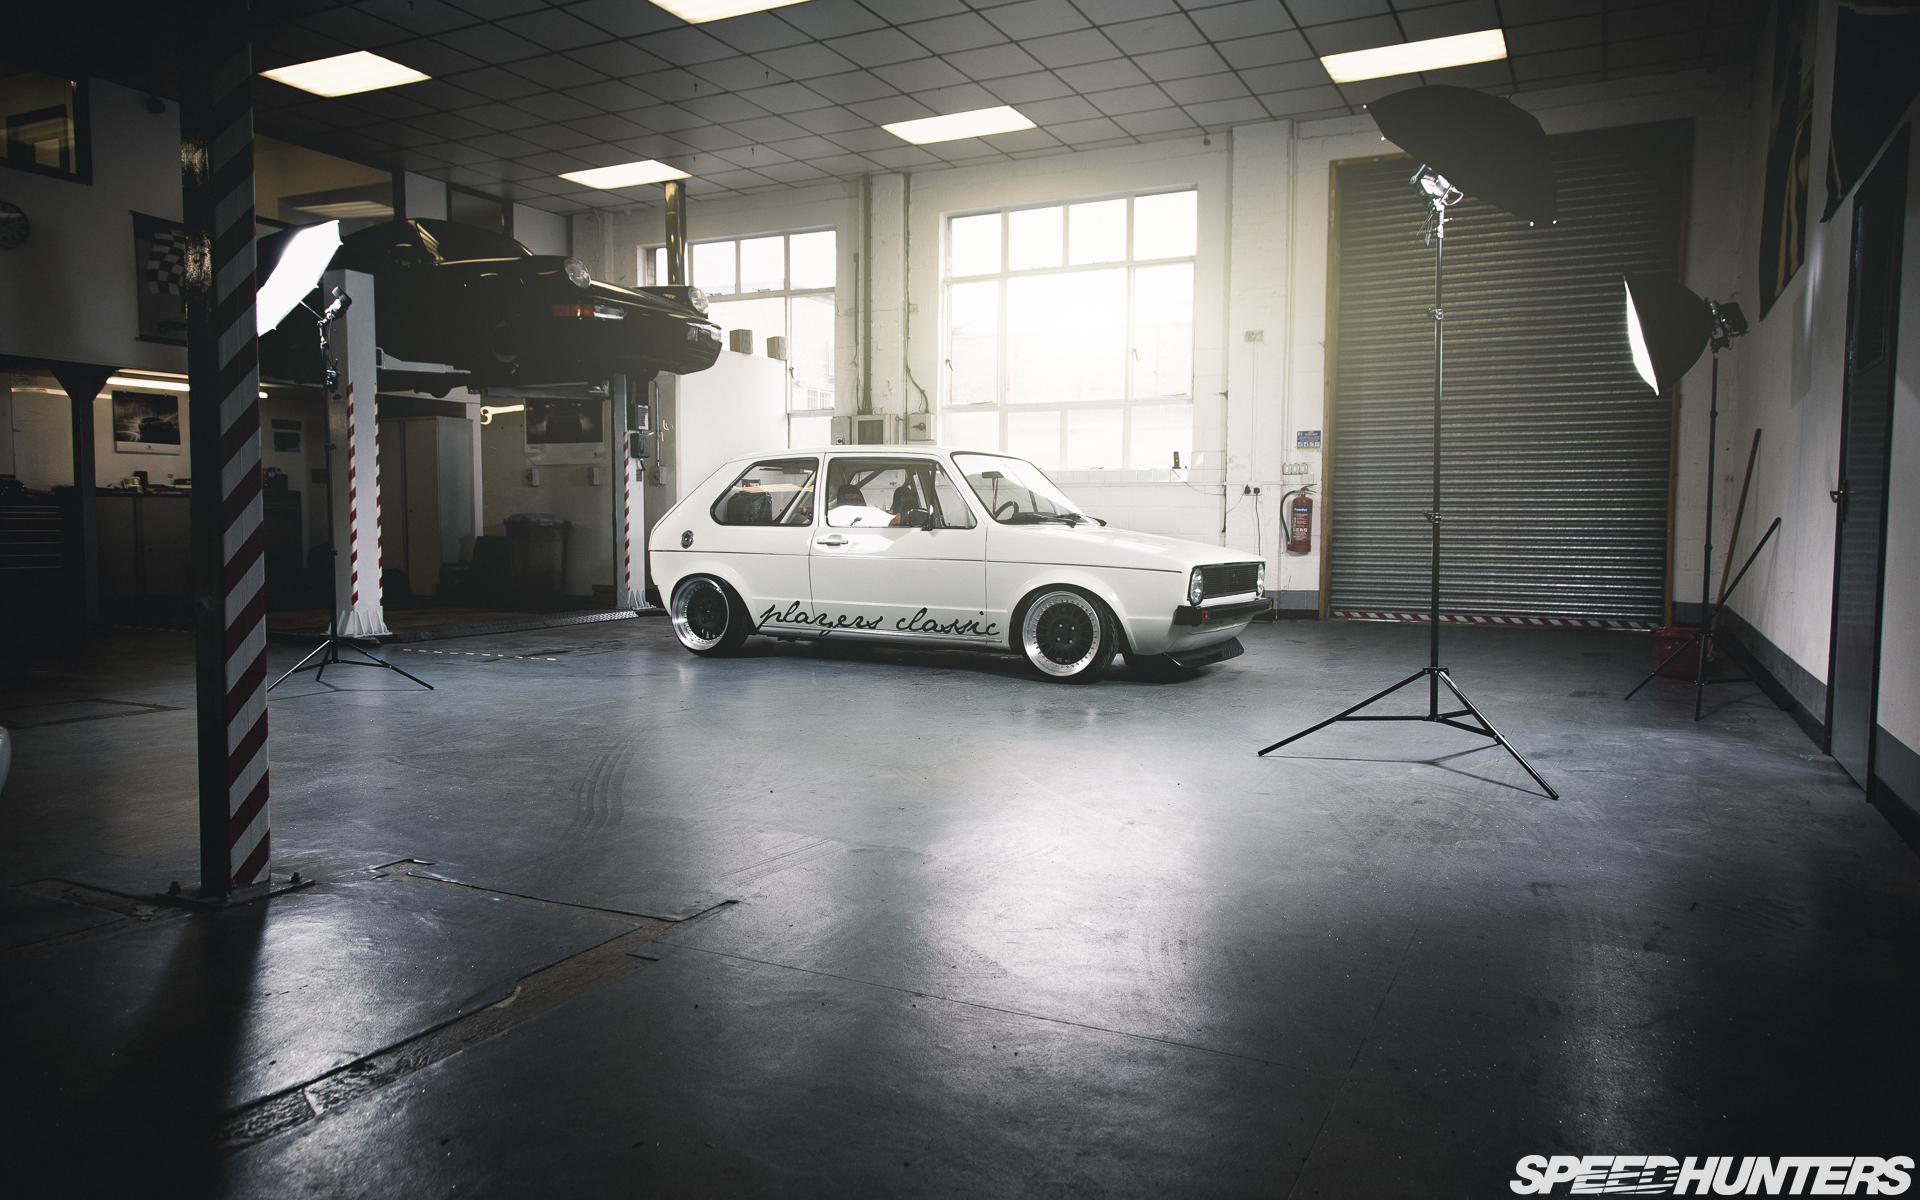 Players Supercharged Golf Mk1 likewise Players Supercharged Golf Mk1 also Players Supercharged Golf Mk1 together with Players Classic Supercharged Mk1 Golf additionally Players Supercharged Golf Mk1. on players classic supercharged mk1 golf g60